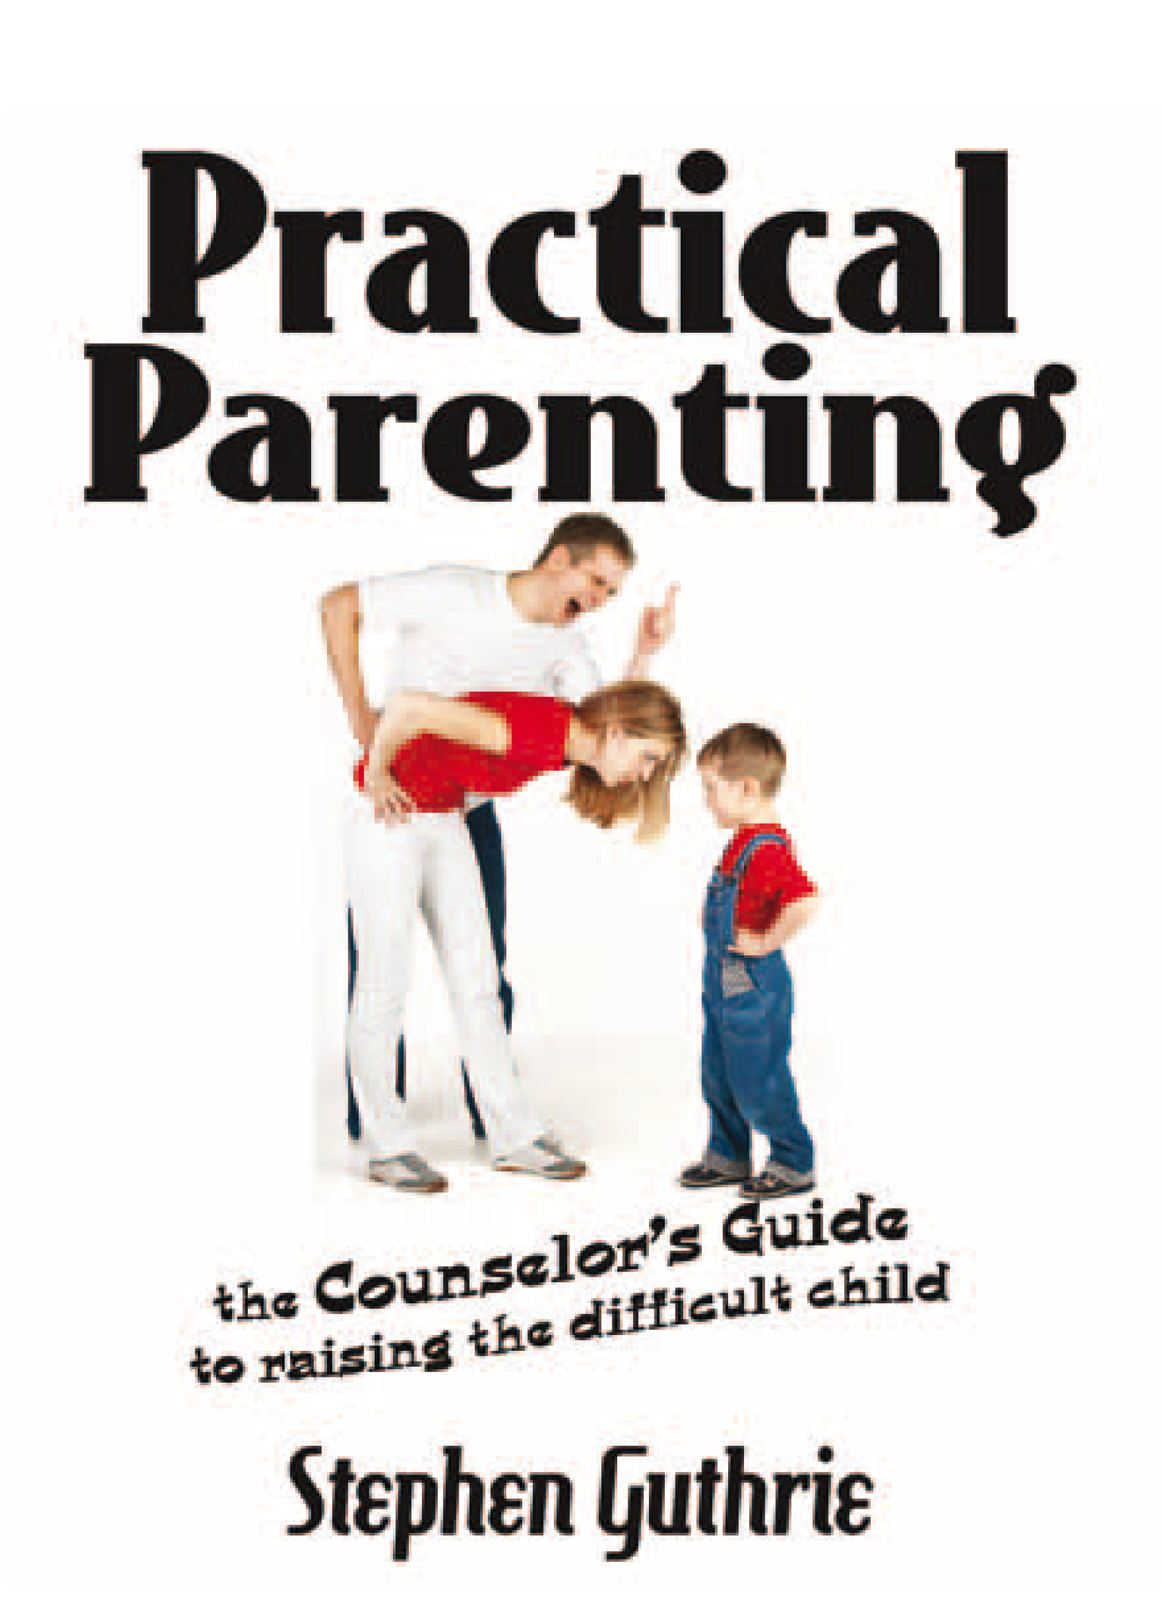 Practical Parenting A counselor's Guide to Raising the Difficult Child